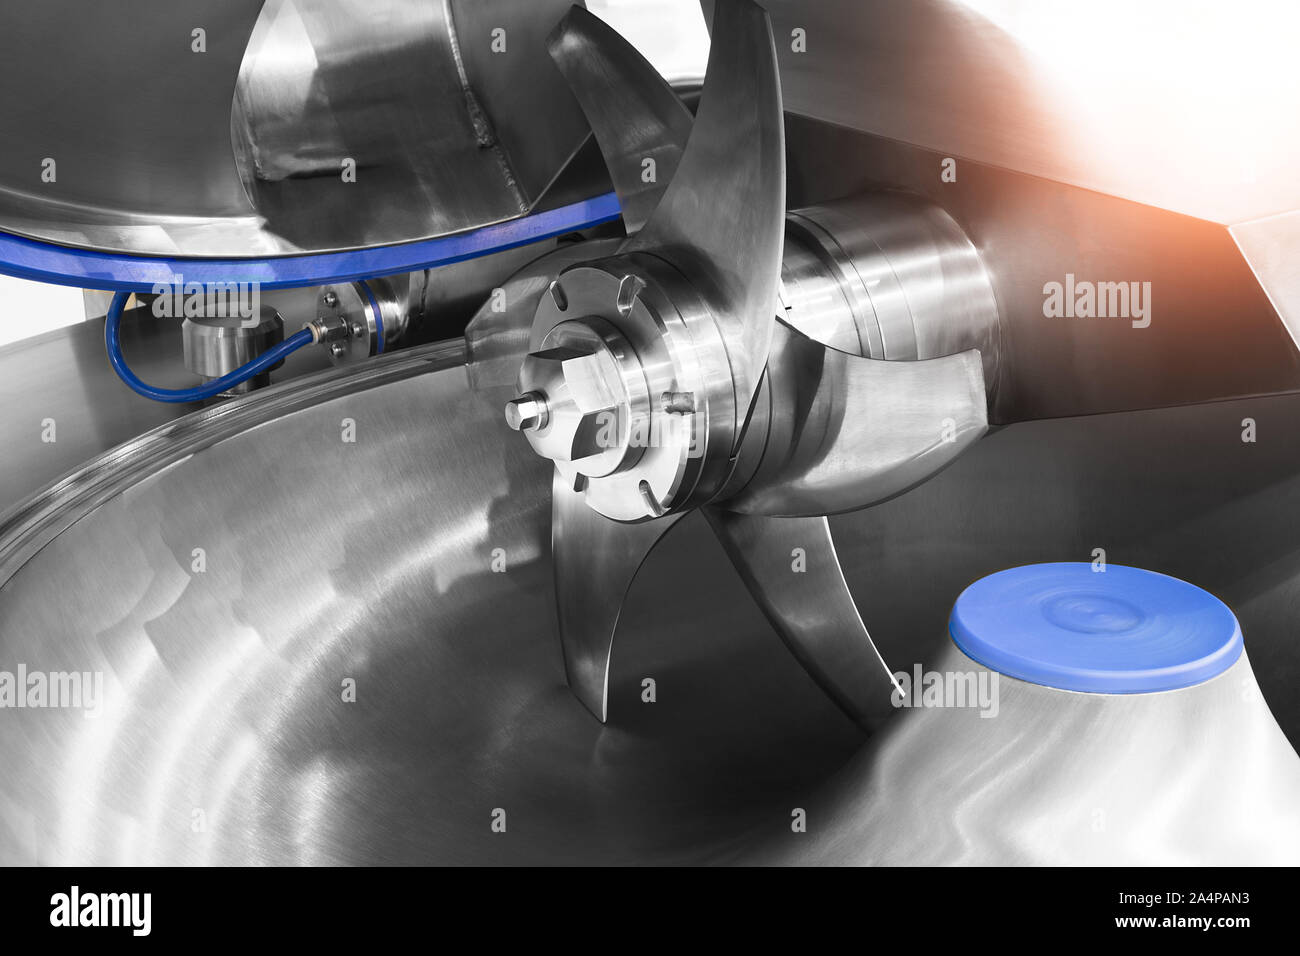 Industrial open mixer in food industry close-up Stock Photo